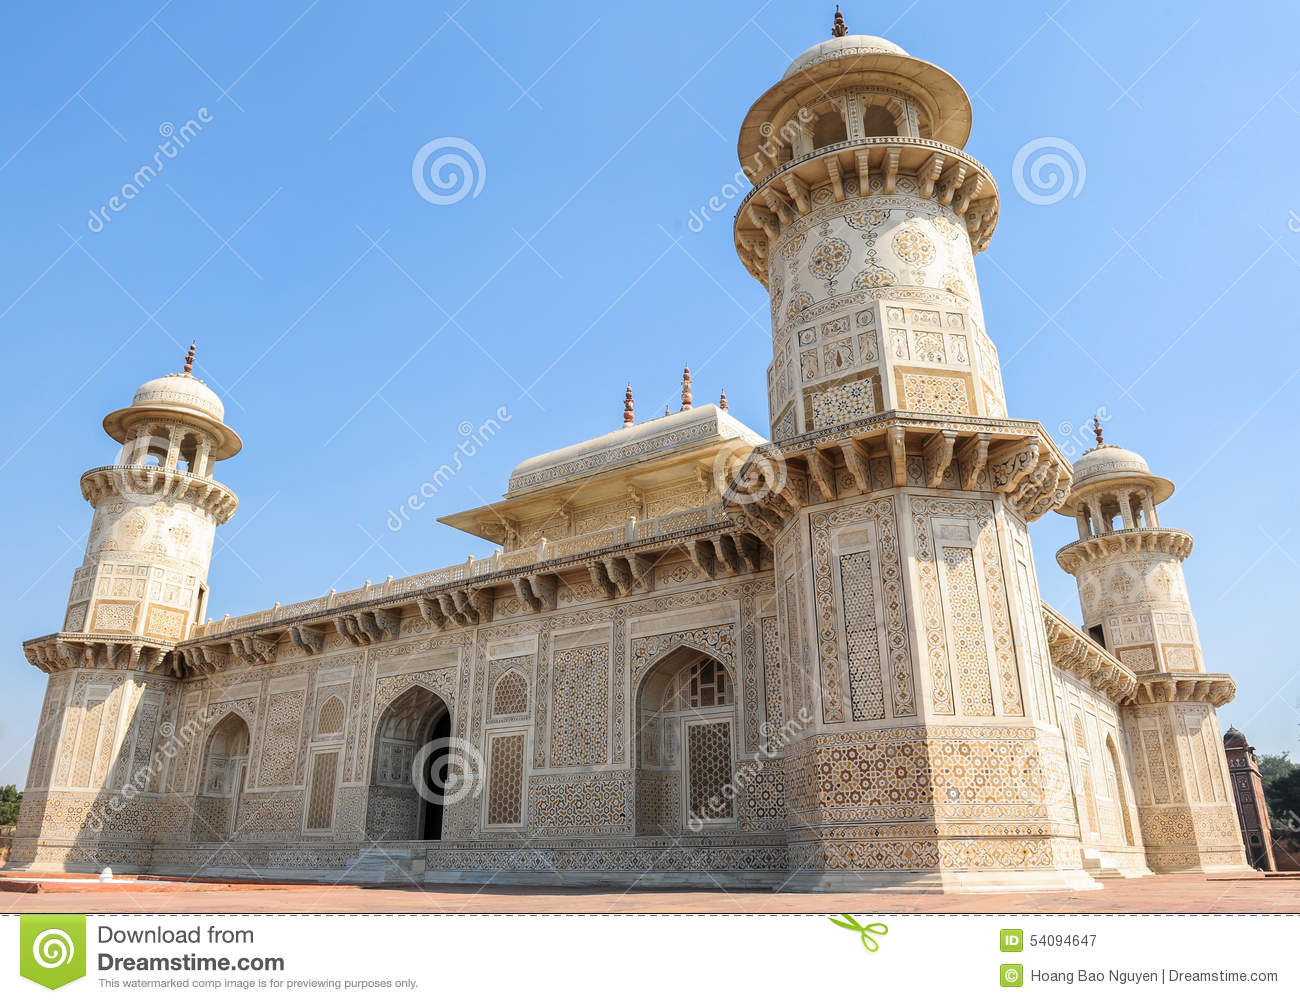 mughal architecture of agra city india stock image image of